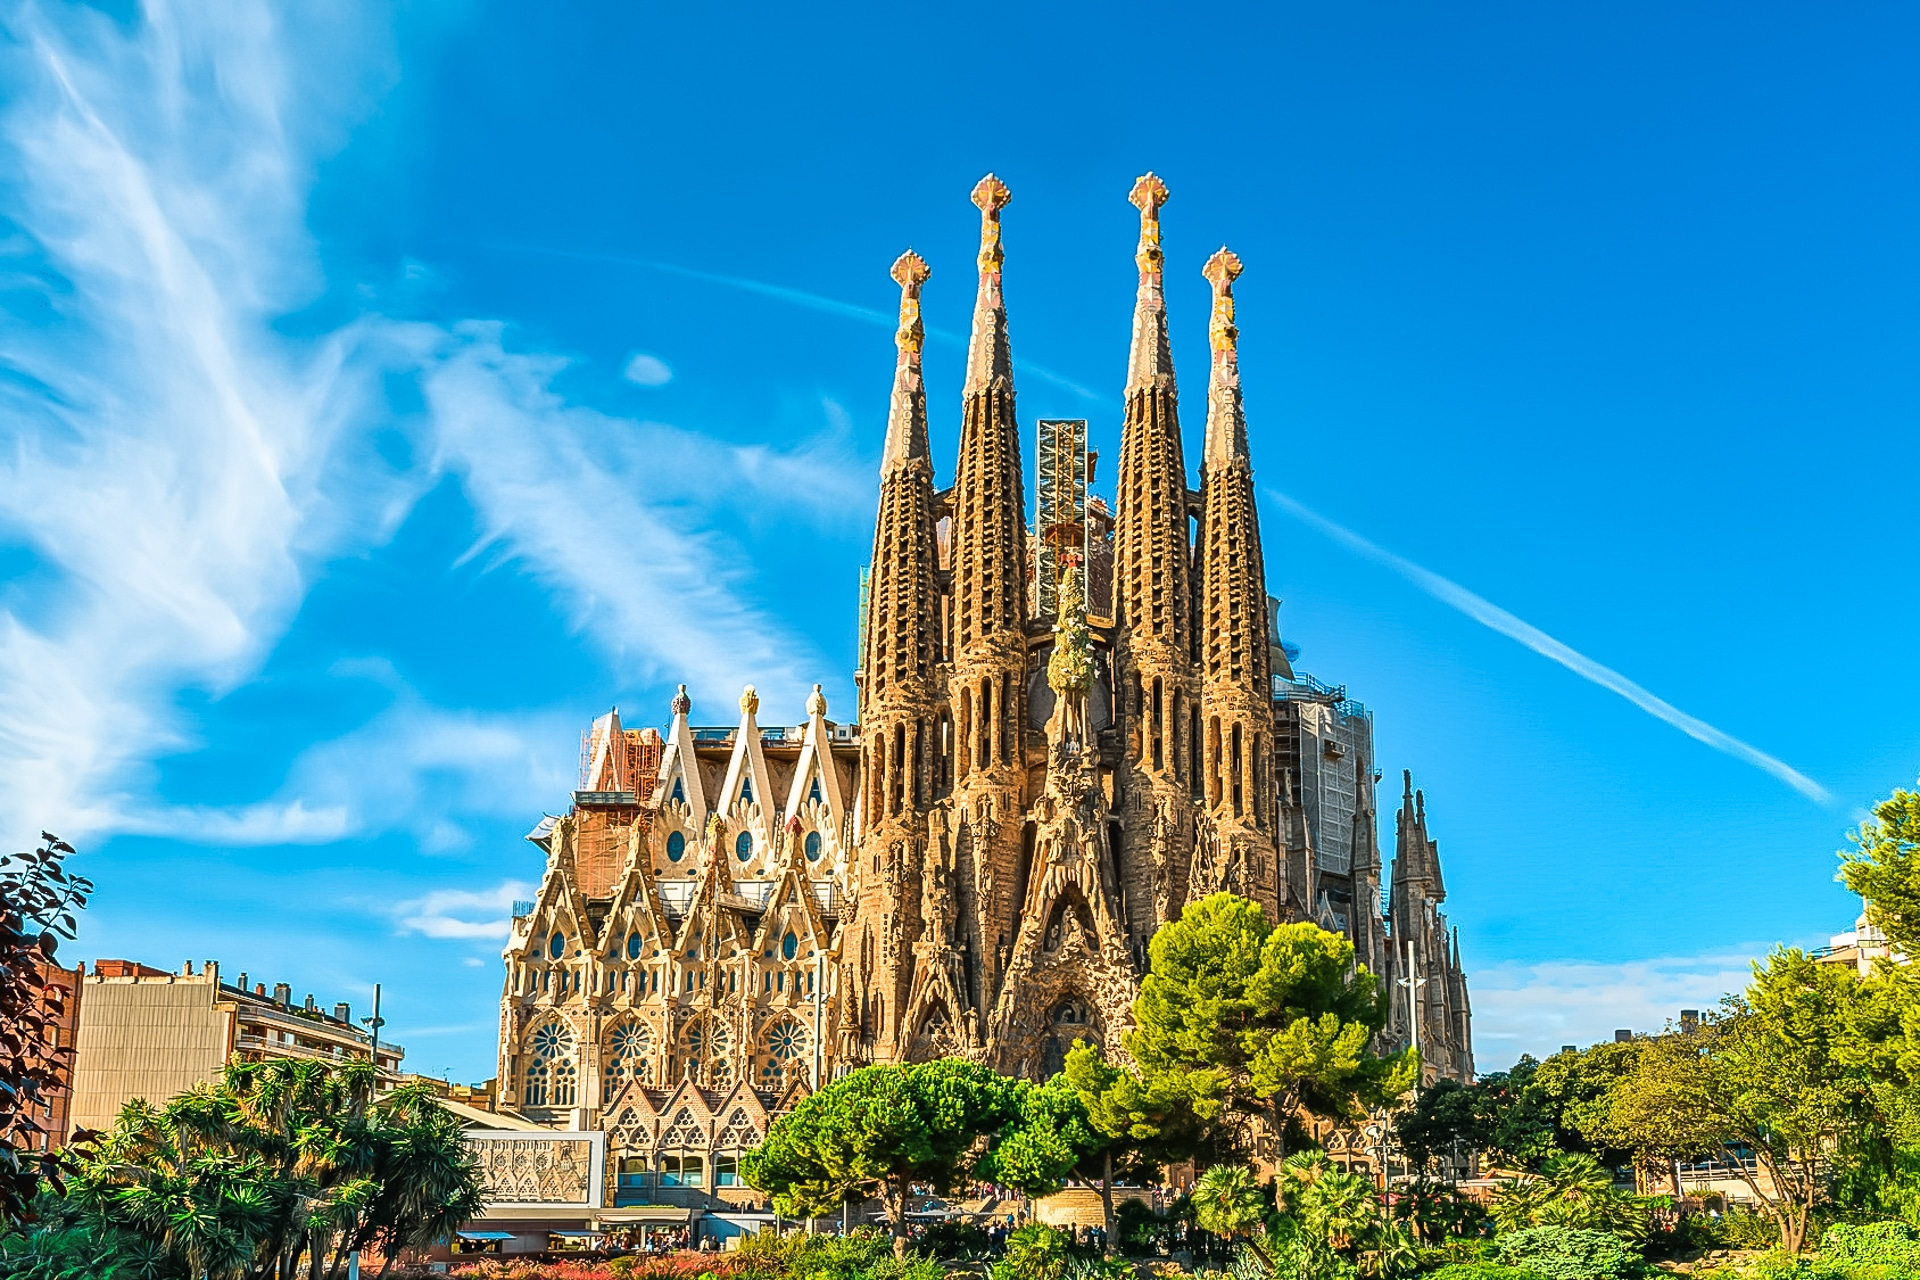 Excursions and tours in Barcelona, Spain